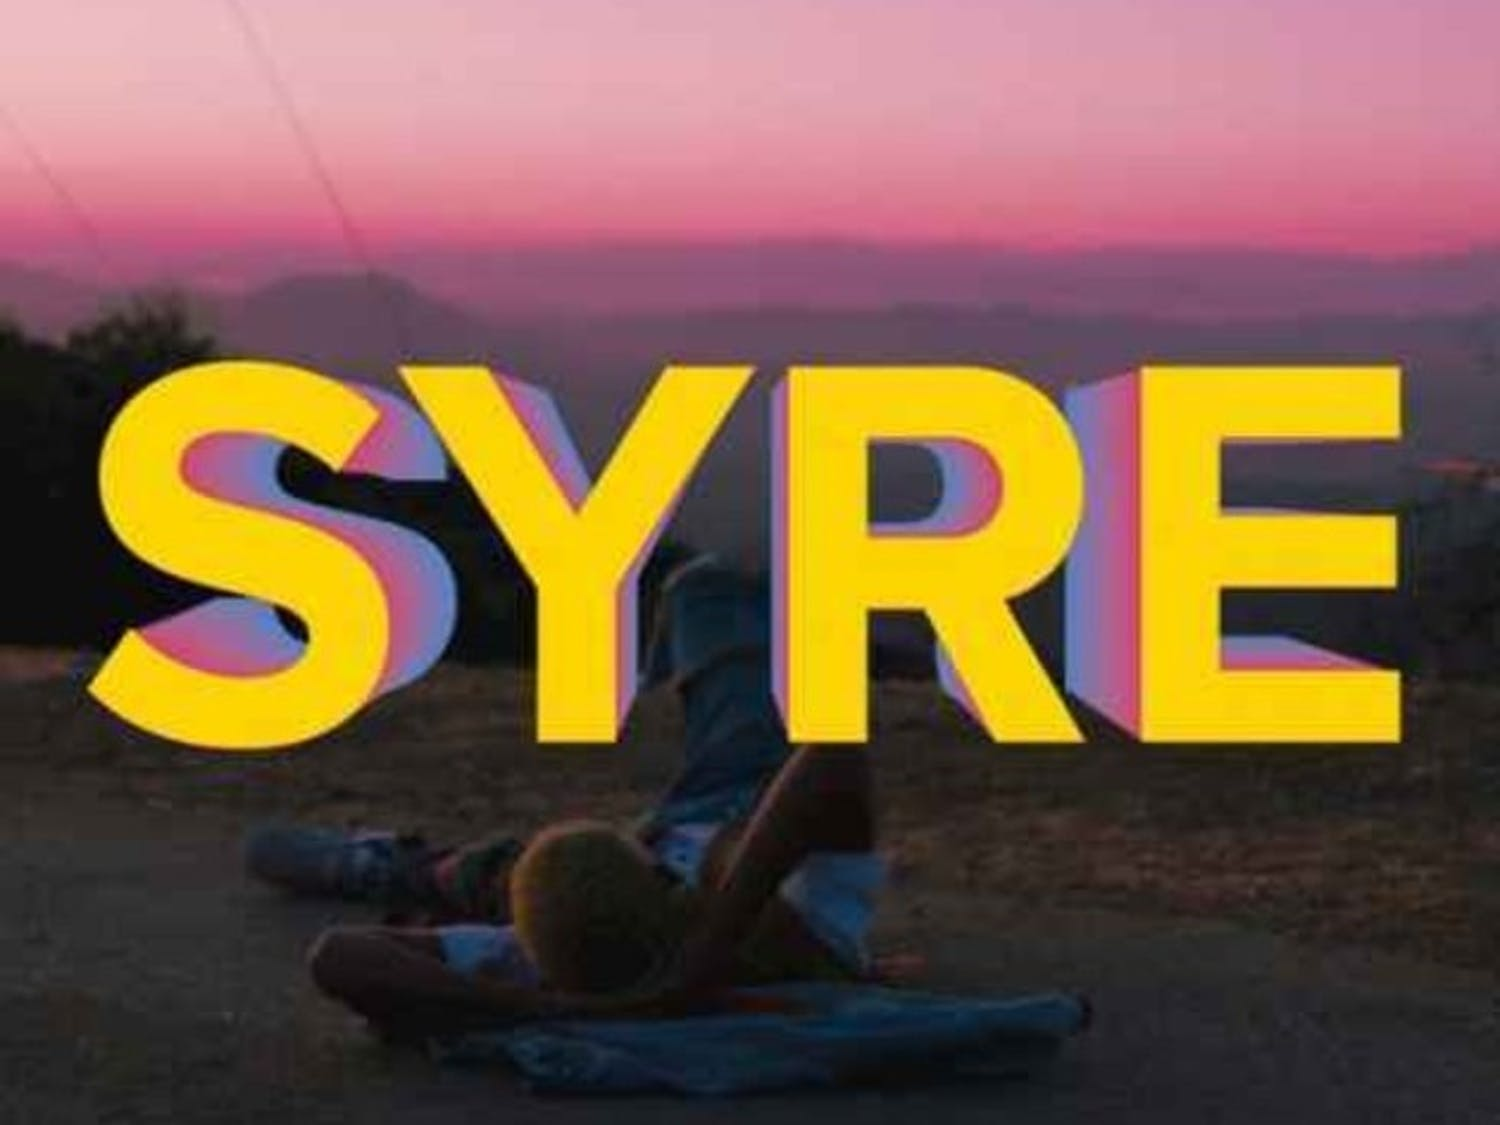 While multi-dimensional in its production and musicality,SYRE doesn't leave enough up to listener interpretation.